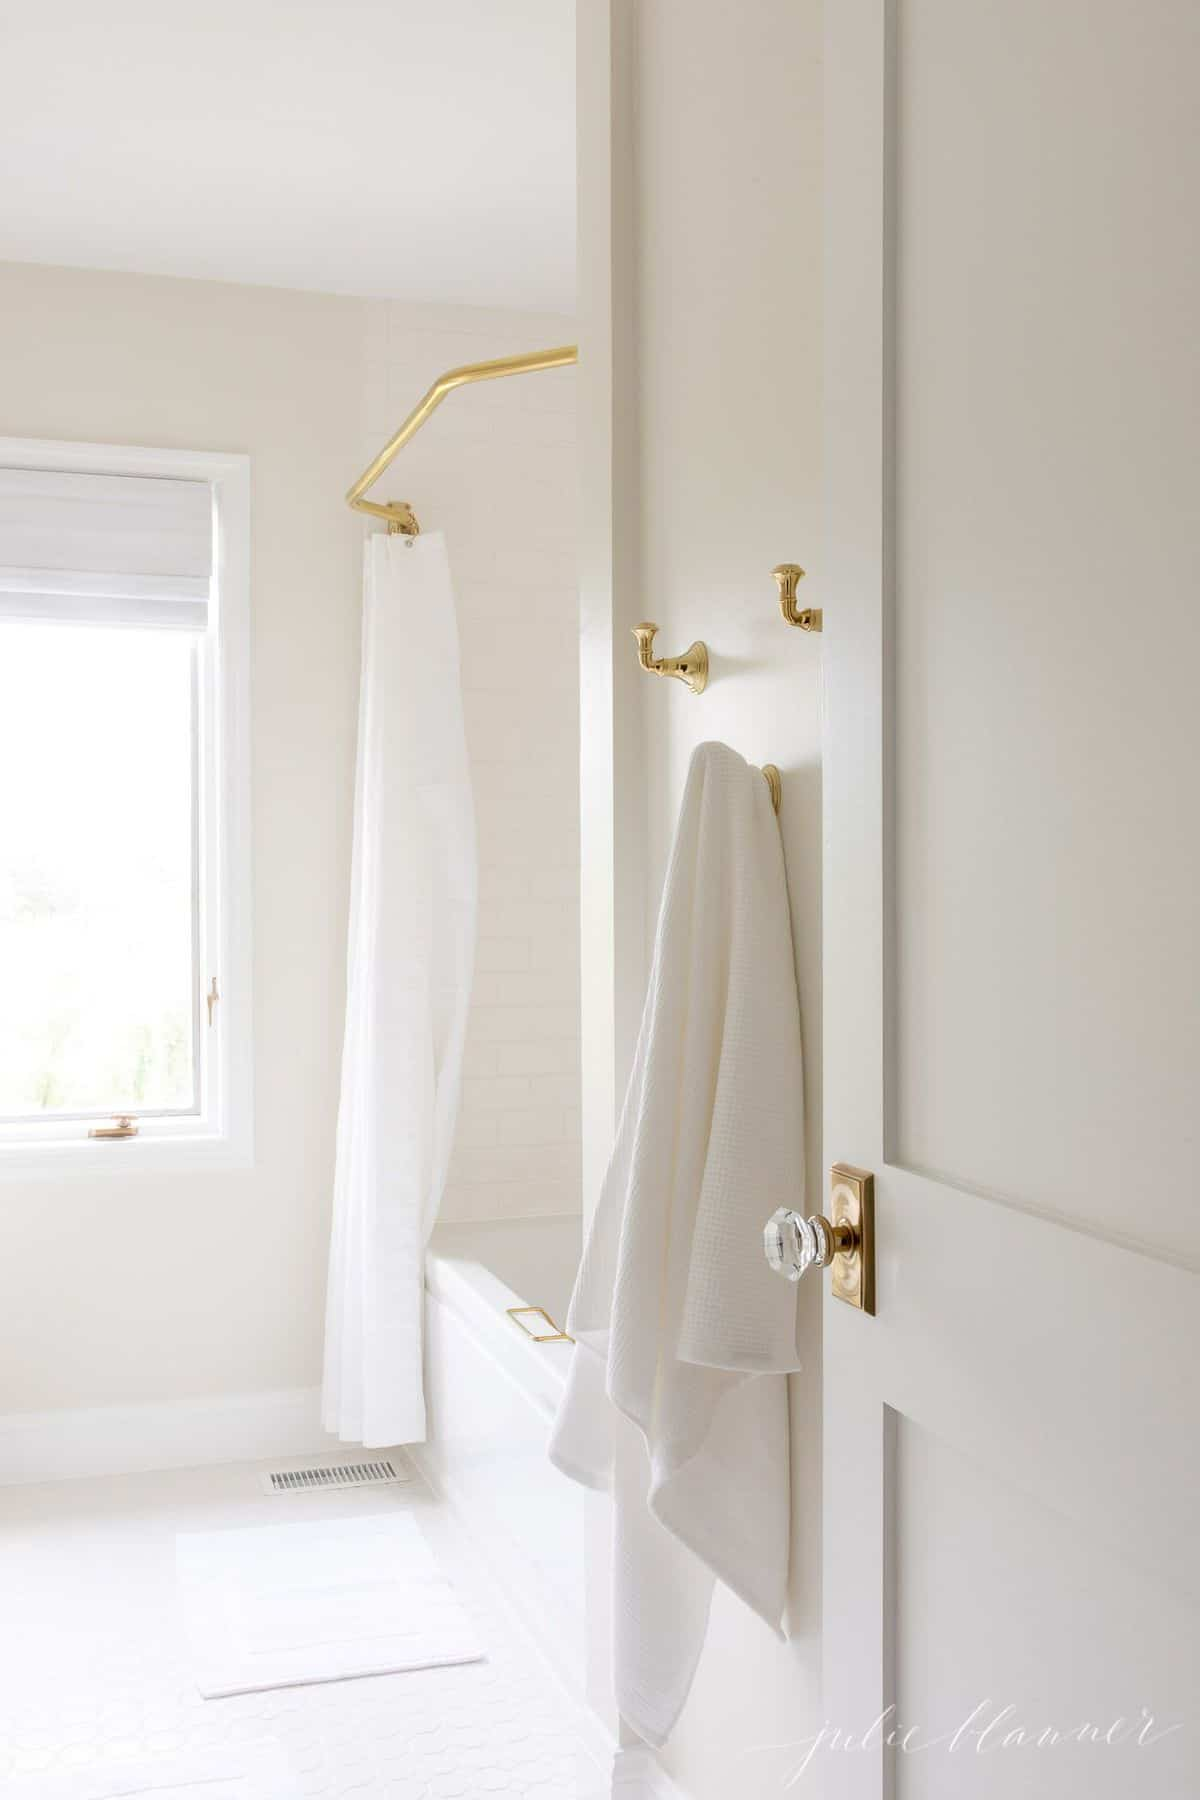 A white bathroom shot featuring brass towel hooks and a brass shower curtain rod.